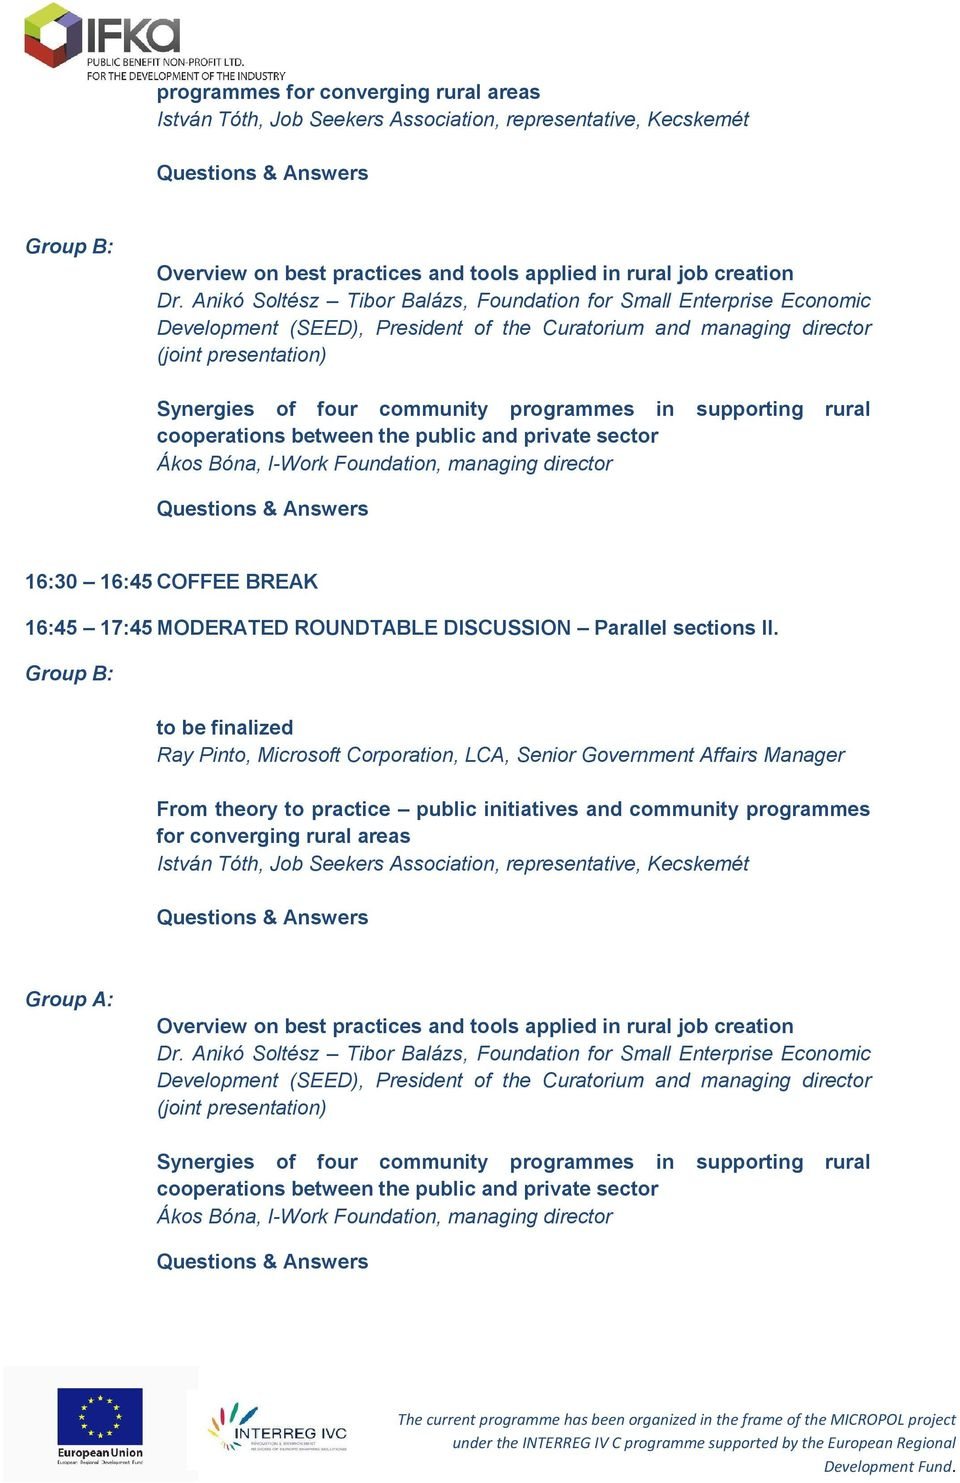 in supporting rural cooperations between the public and private sector Ákos Bóna, I-Work Foundation, managing director 16:30 16:45 COFFEE BREAK 16:45 17:45 MODERATED ROUNDTABLE DISCUSSION Parallel